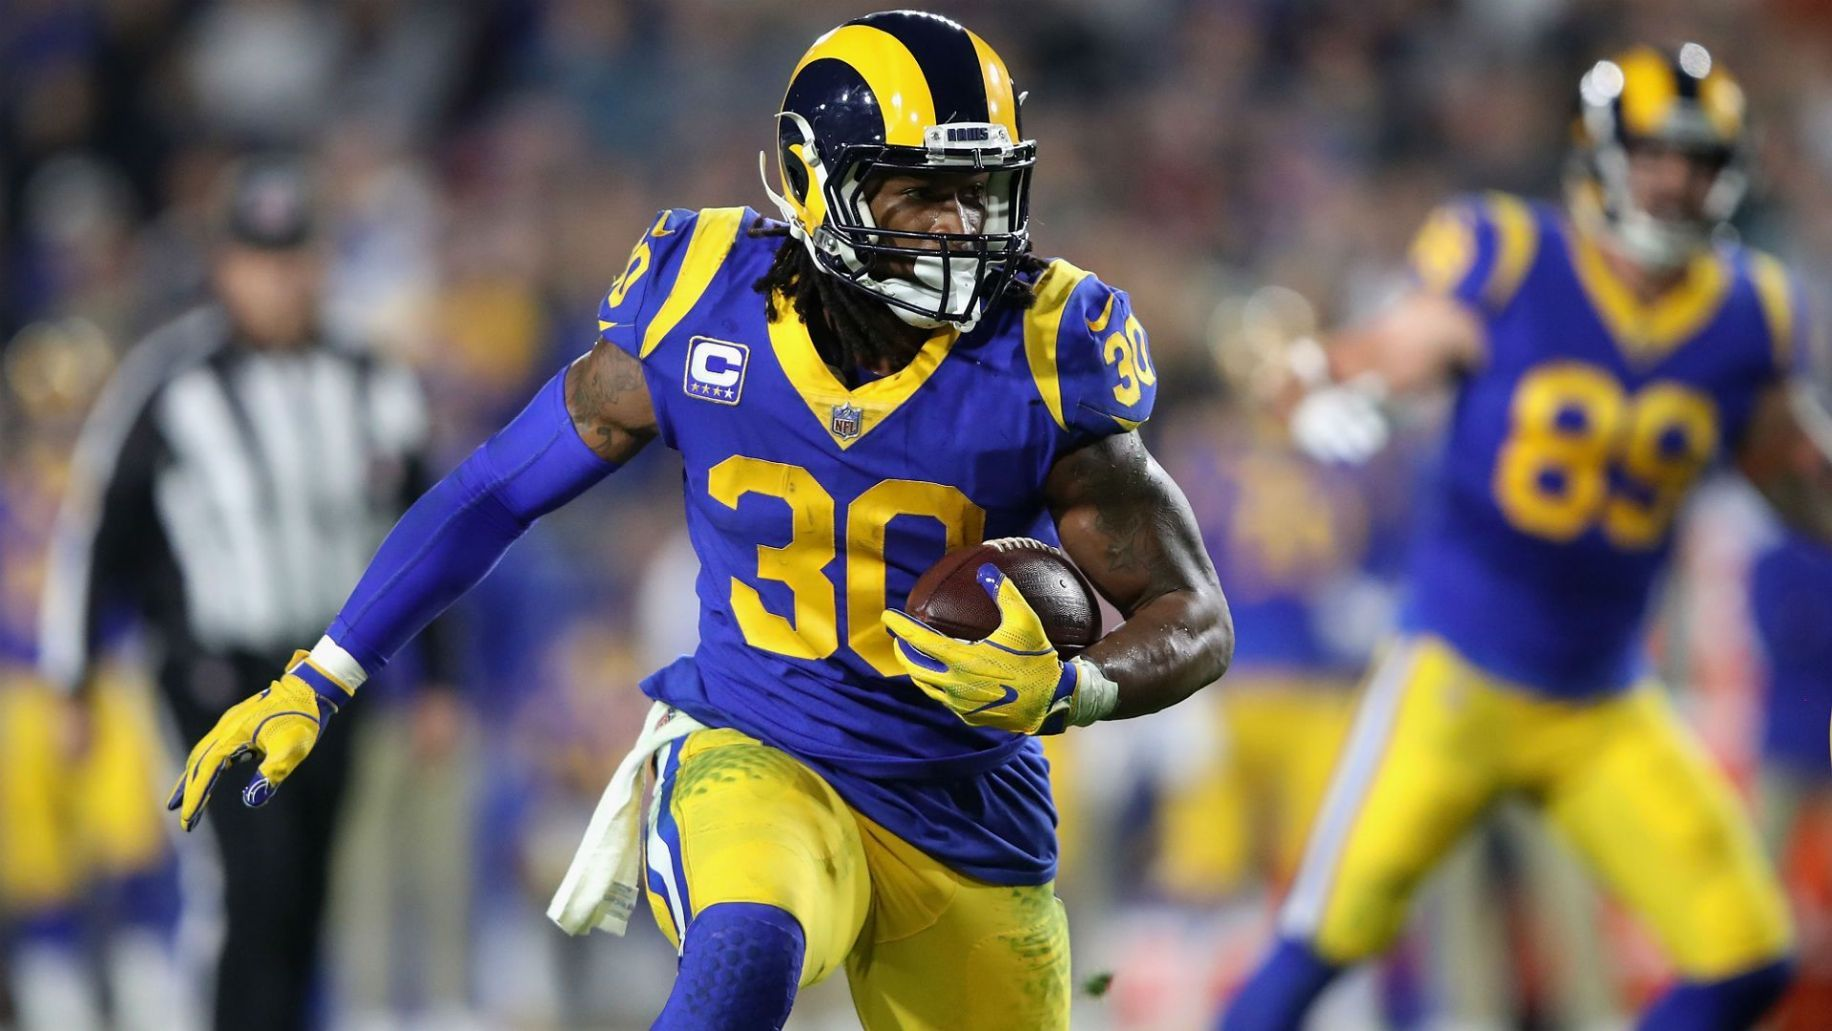 Fantasy Football Nfl Week 2 Impacts Of Todd Gurley Bobby Wagner Cory Littleton And Jared Goff With Images Fantasy Football Nfl Week Football